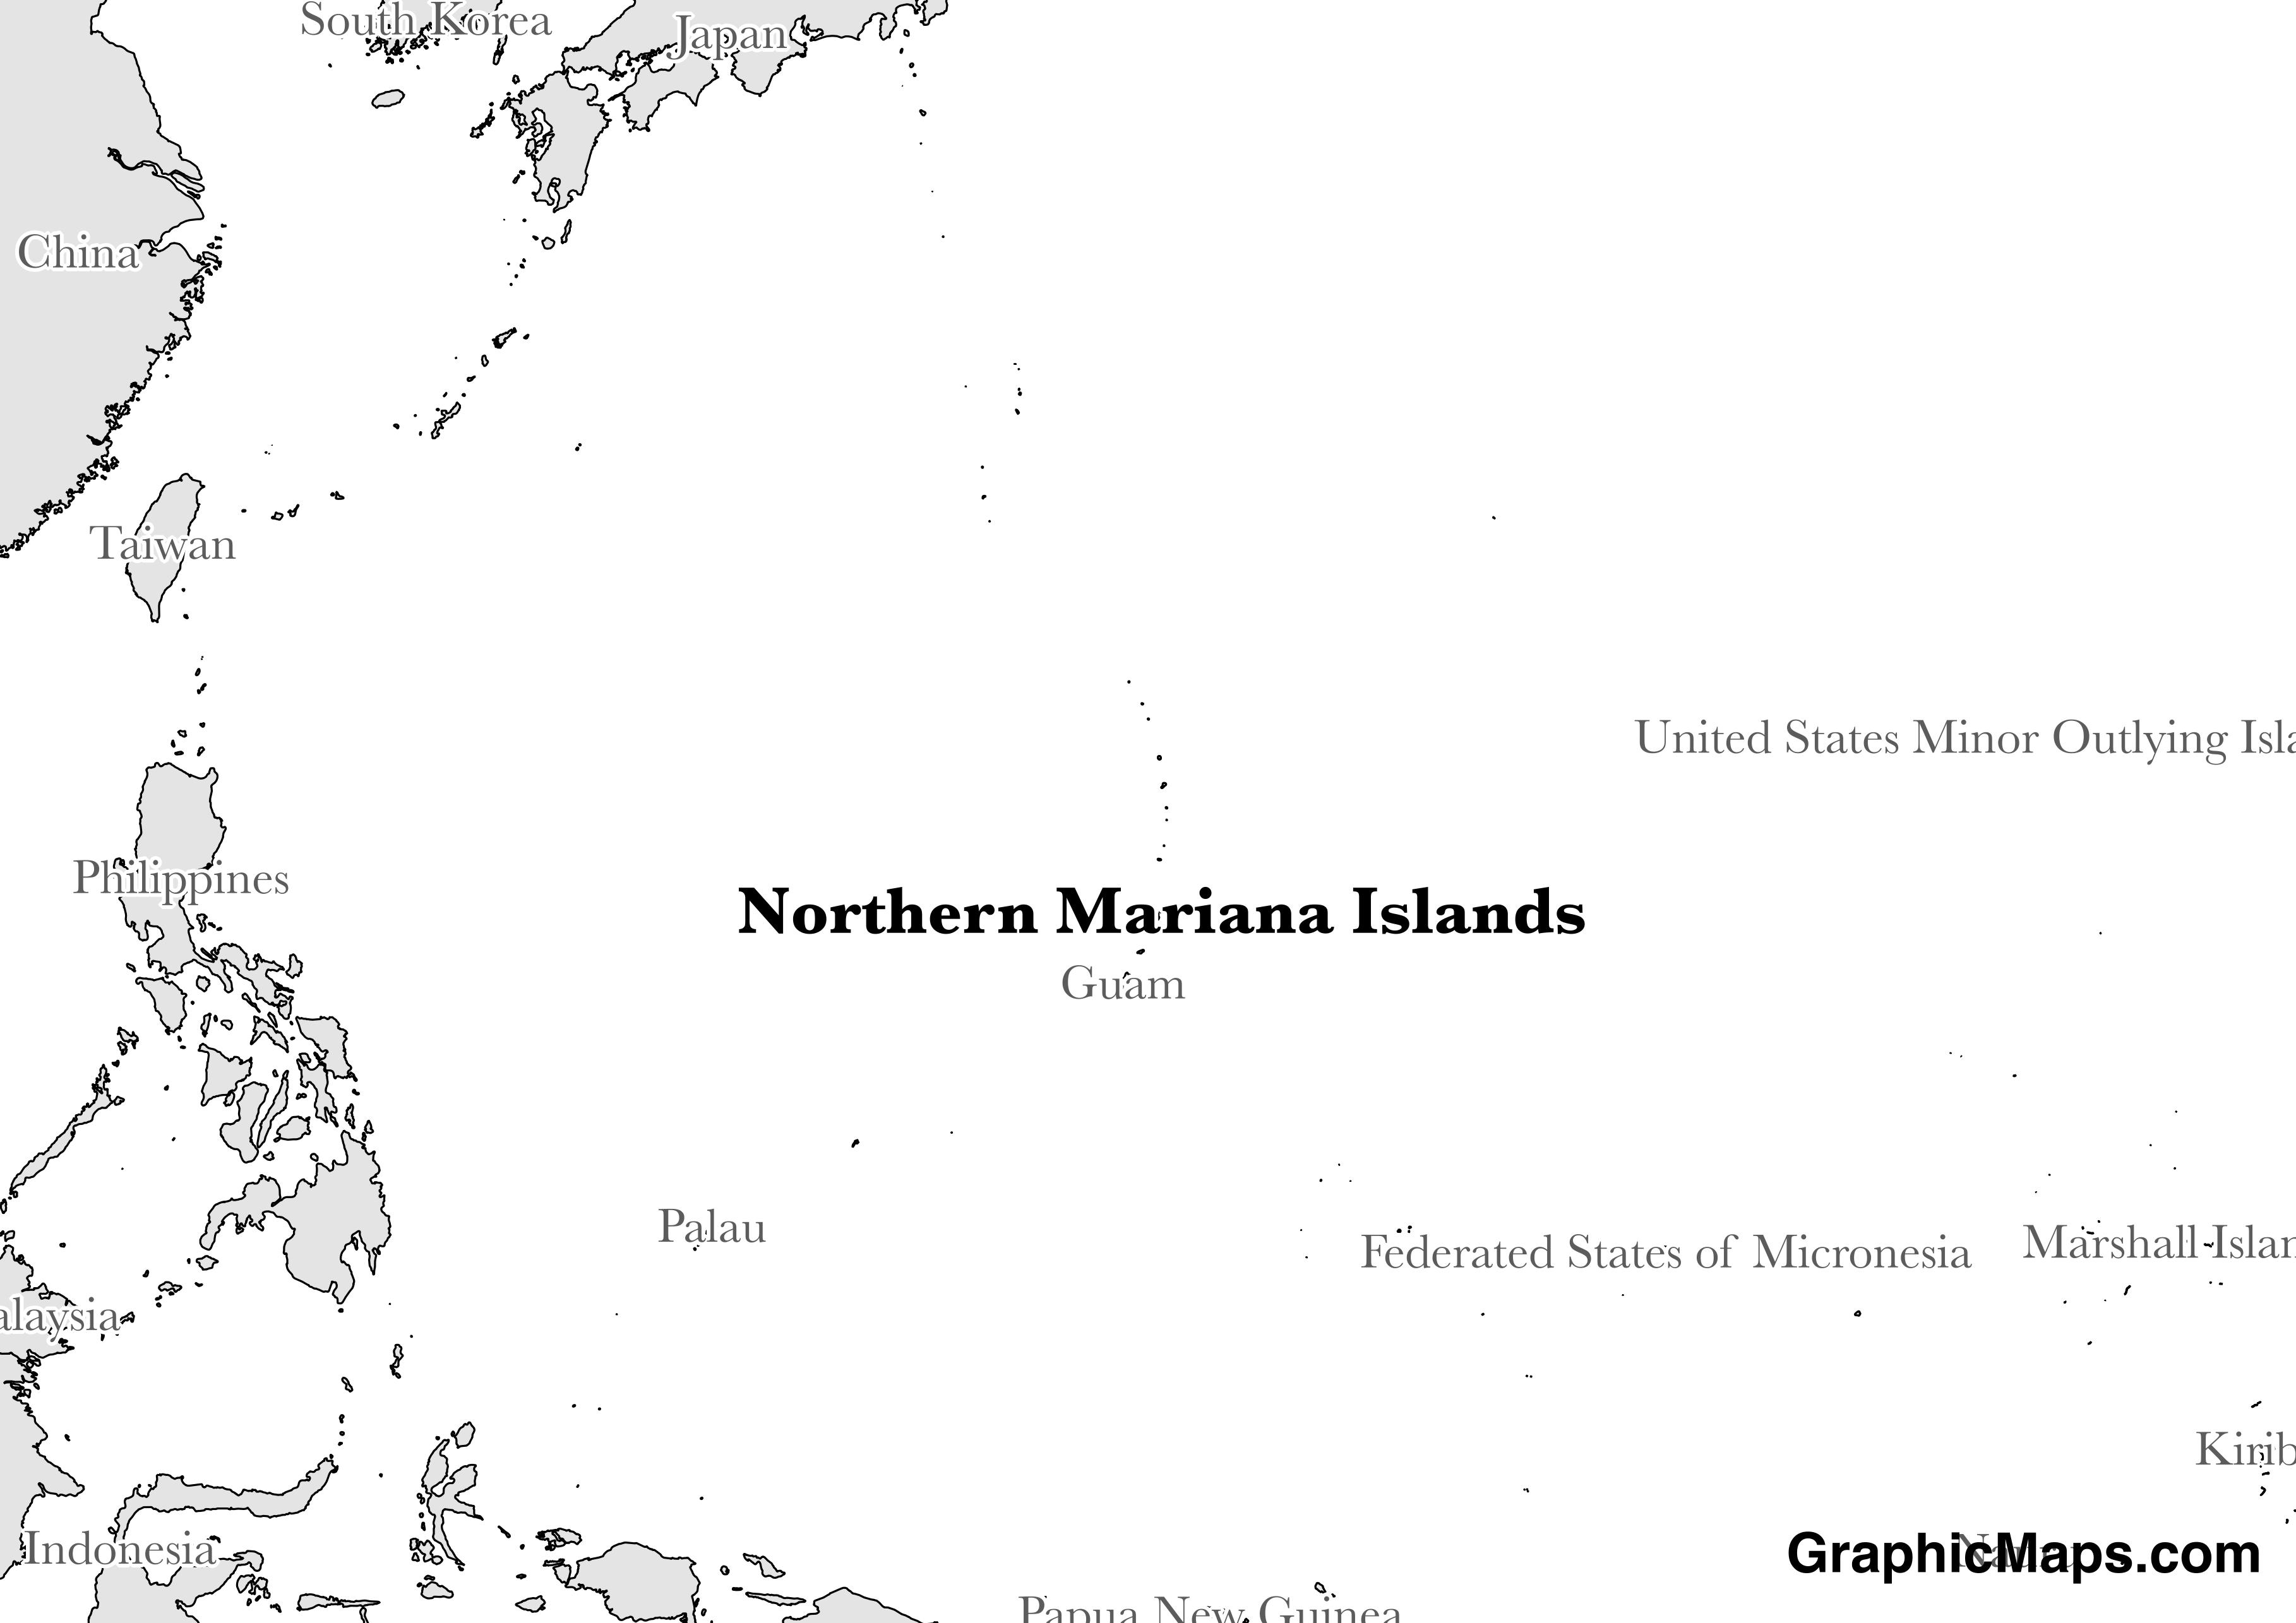 Map showing the location of Northern Mariana Islands